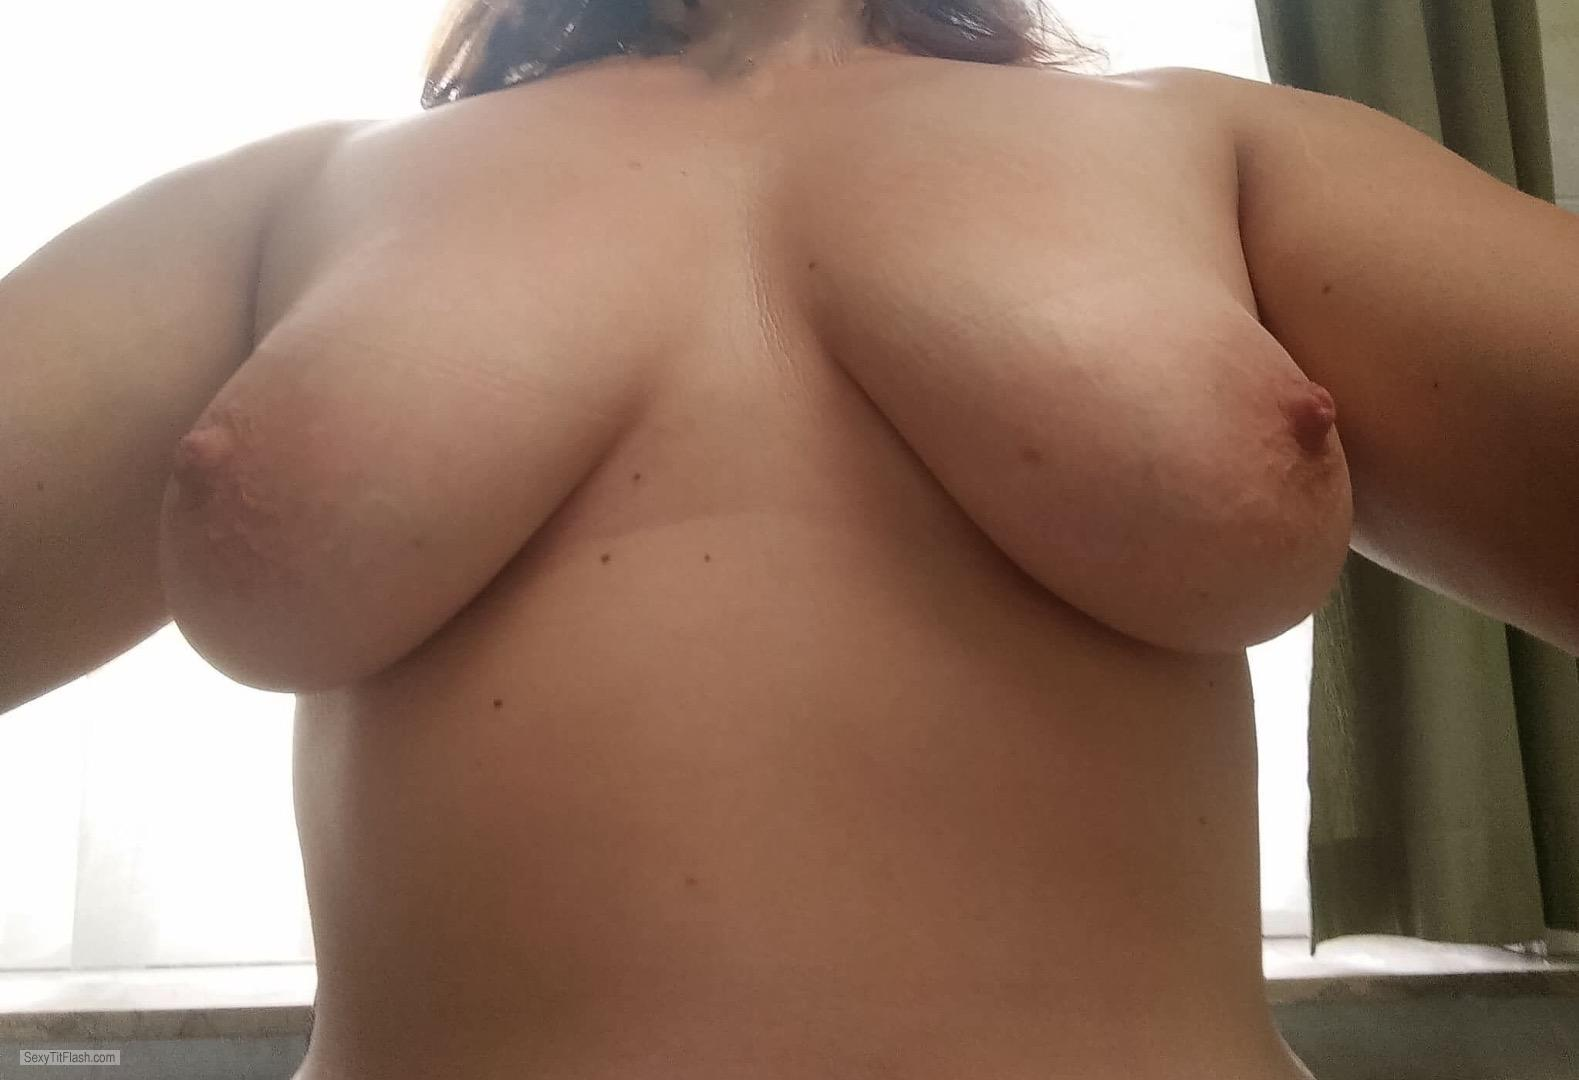 Tit Flash: Wife's Big Tits - Sugar from United Kingdom